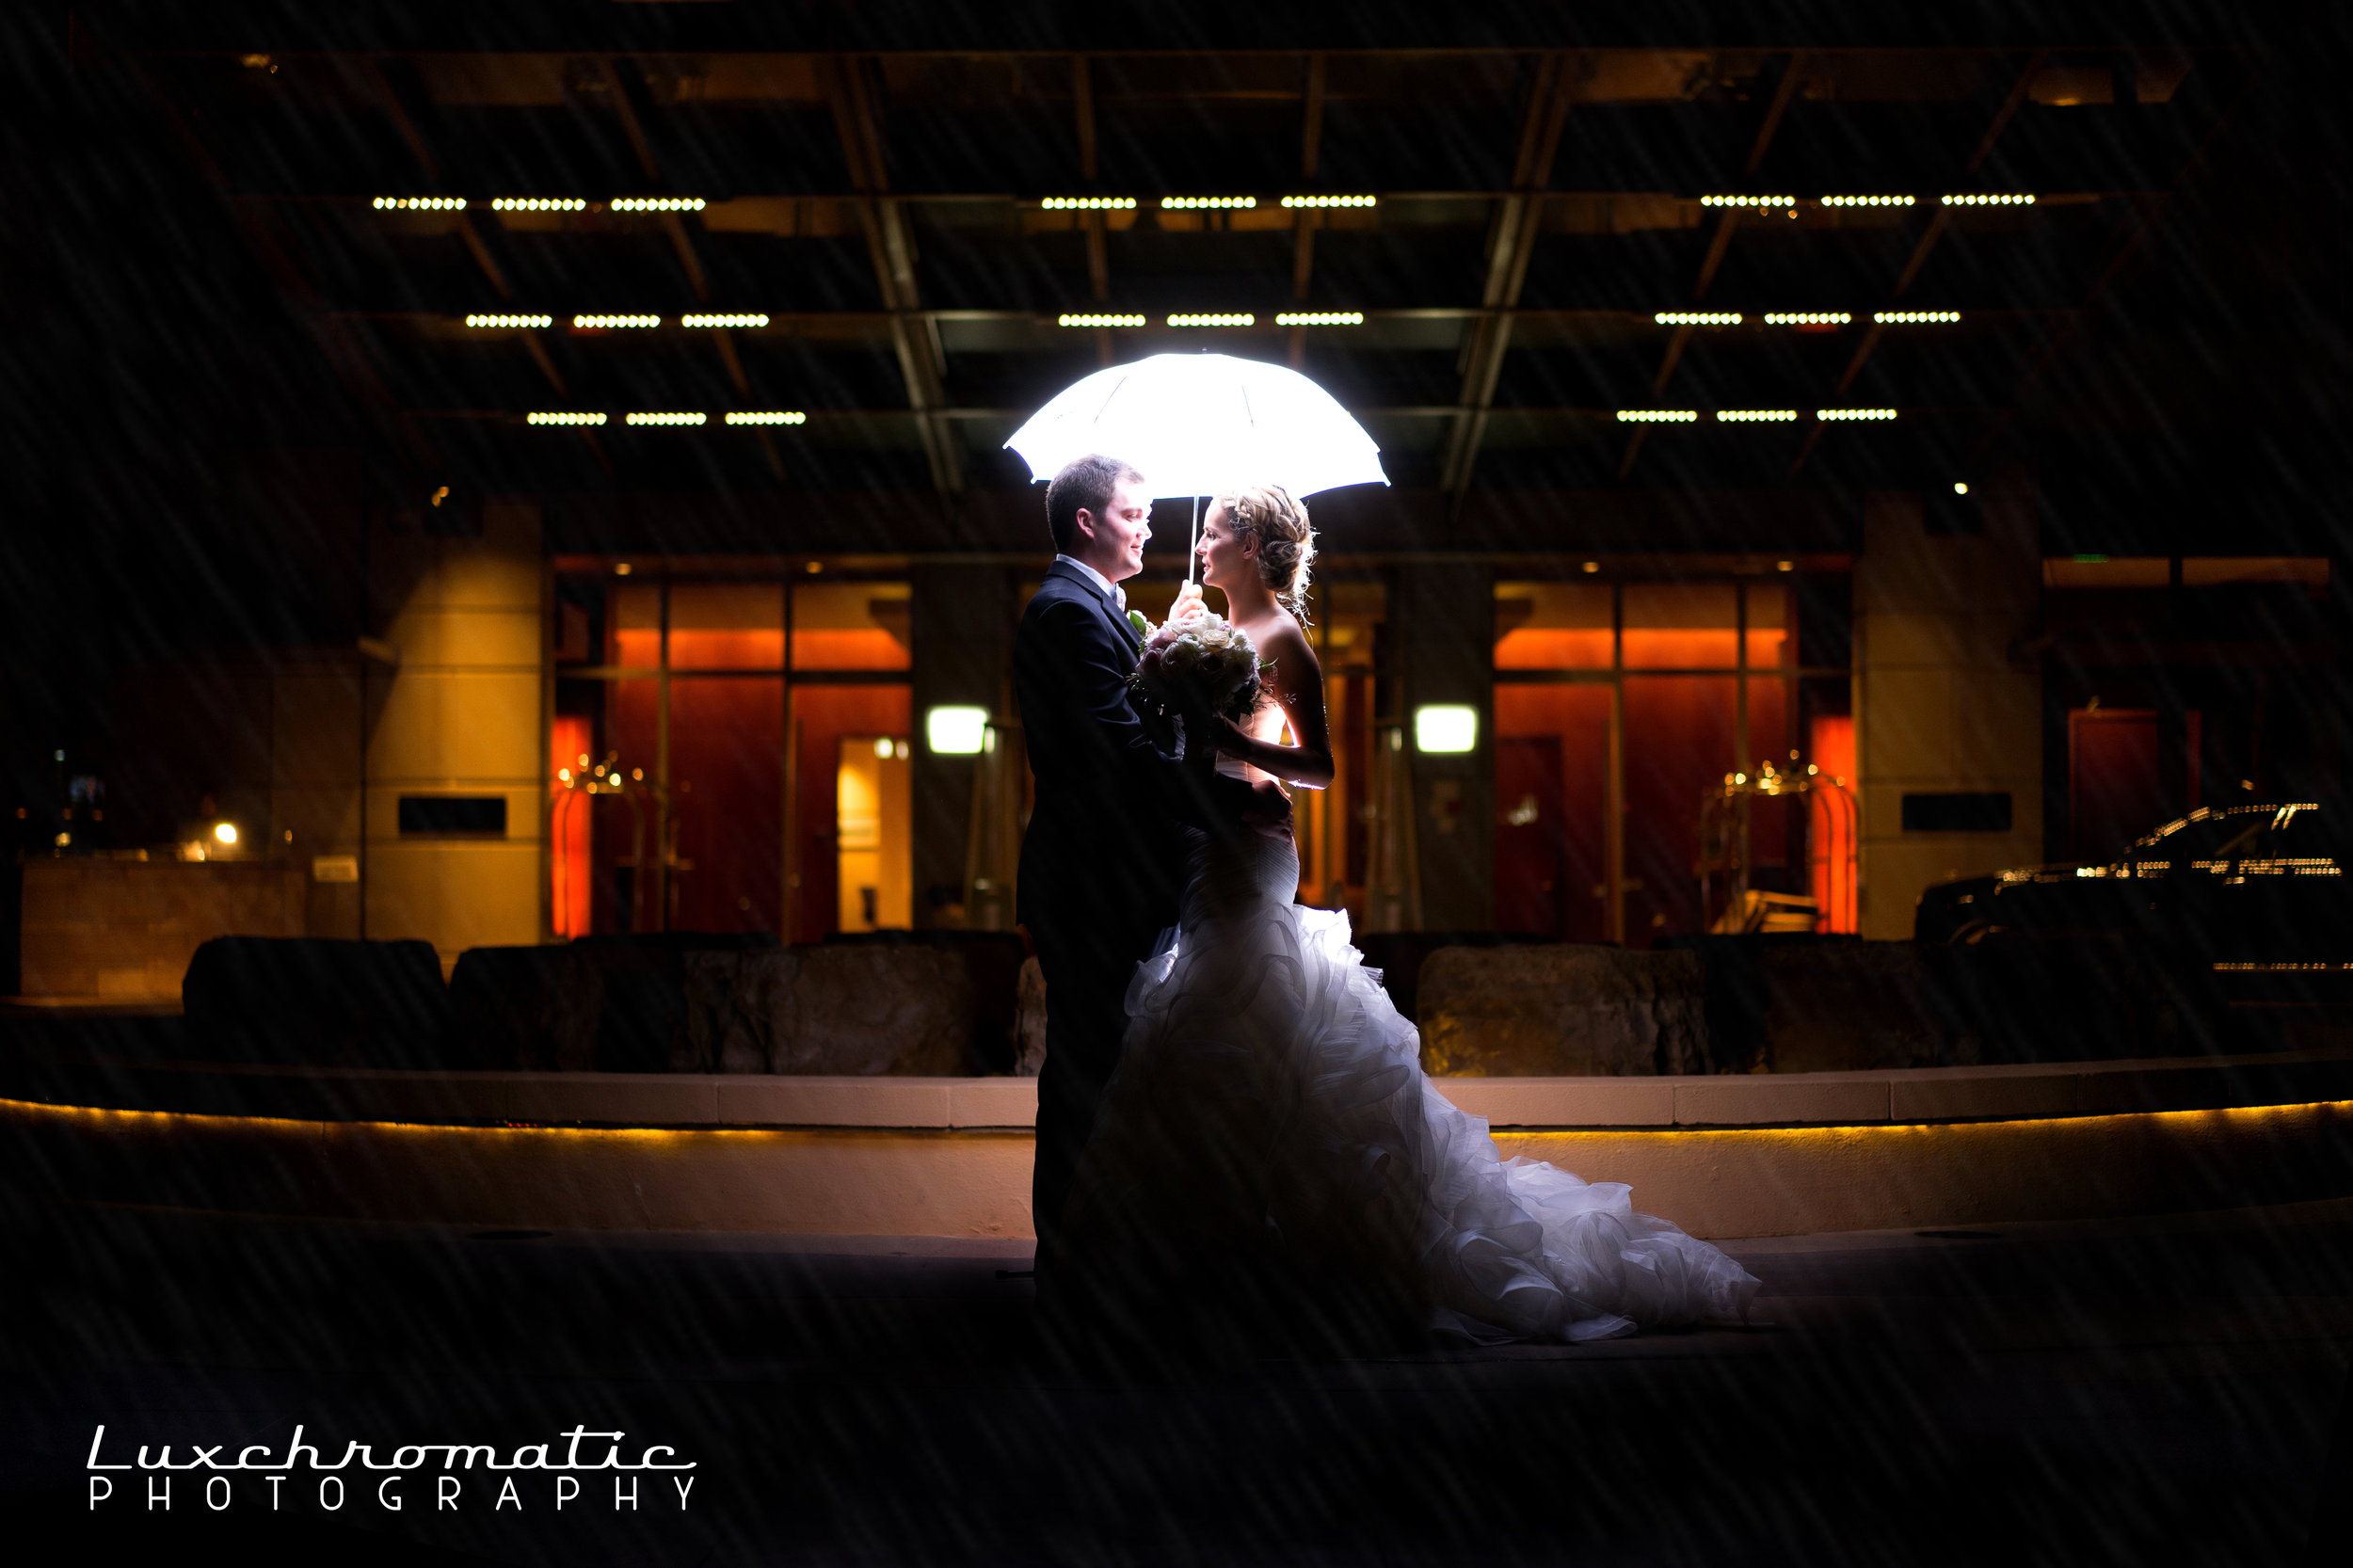 San-Francisco-Bay-Area-Wedding-Four-Seasons-Hotel-Silicon-Valley-Bride-Groom-Luxchromatic-Photography_Sarah_Danny-1098.jpg